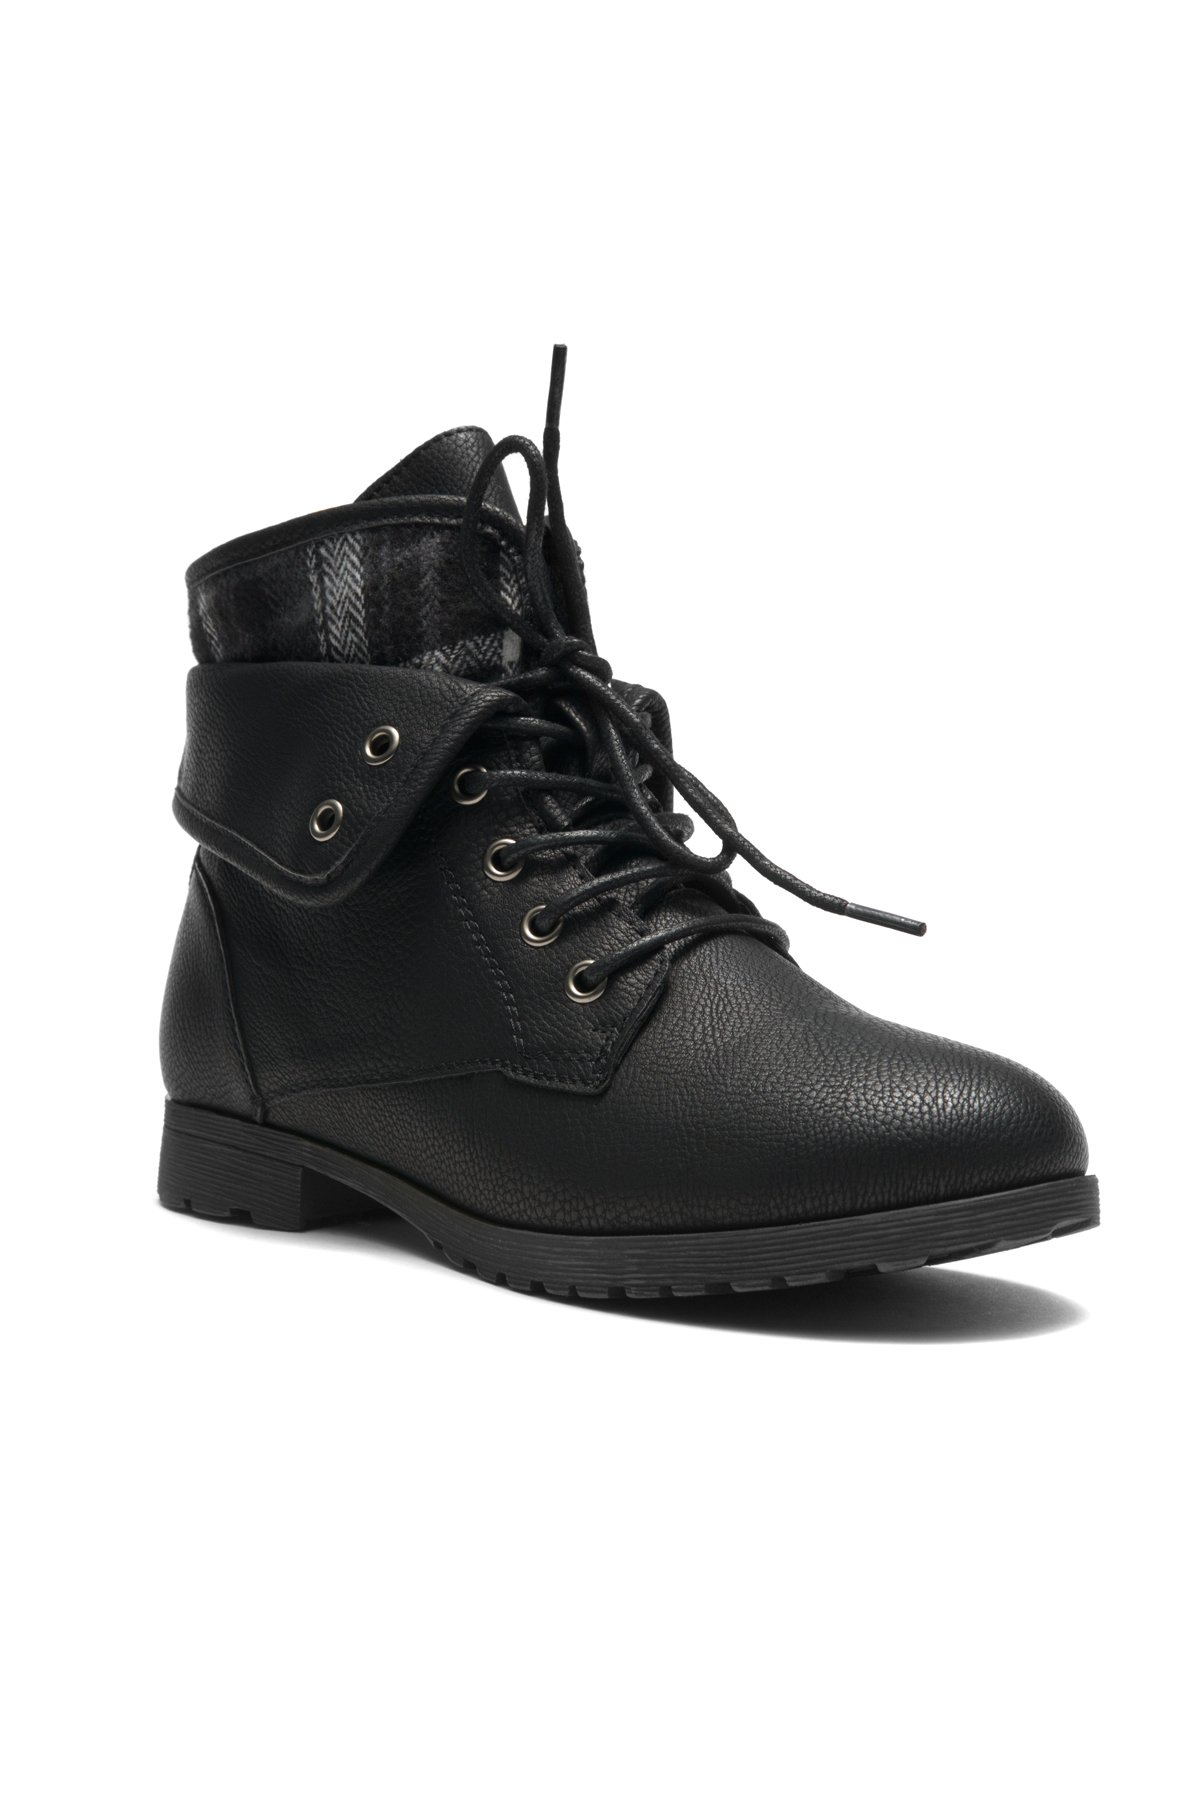 Herstyle Slgabrianna Expedition Women's Military Combat Boots Black 8